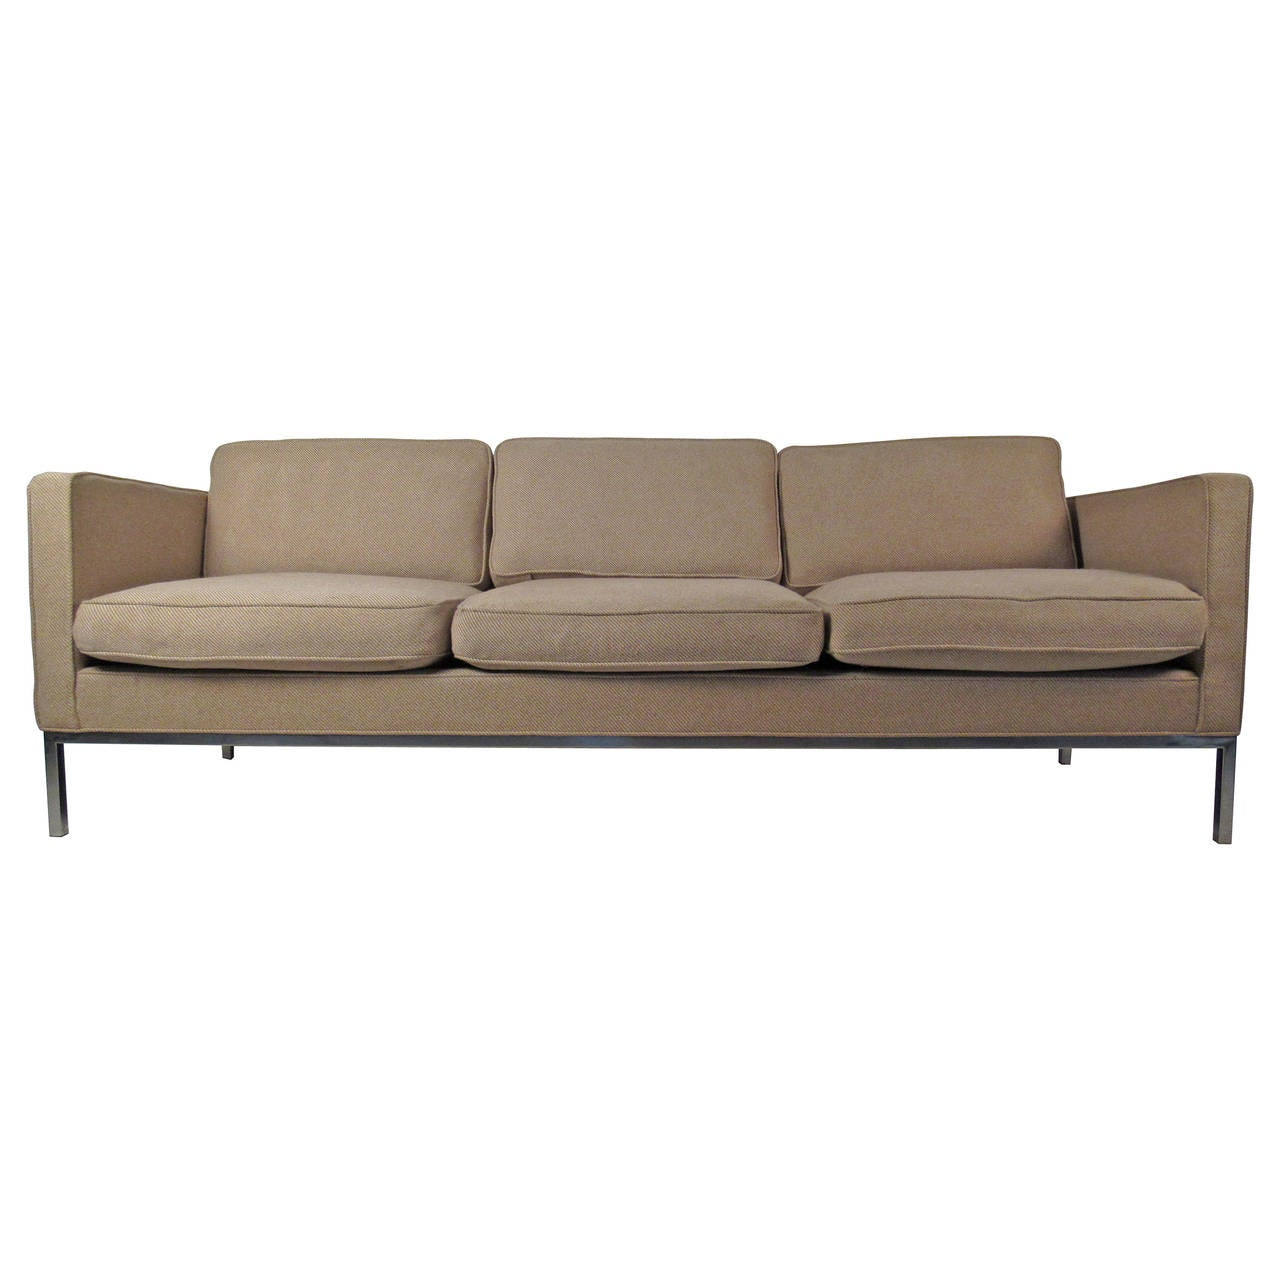 Mid Century Modern Sofas: Mid-Century Modern Sofa In The Style Of Knoll For Sale At